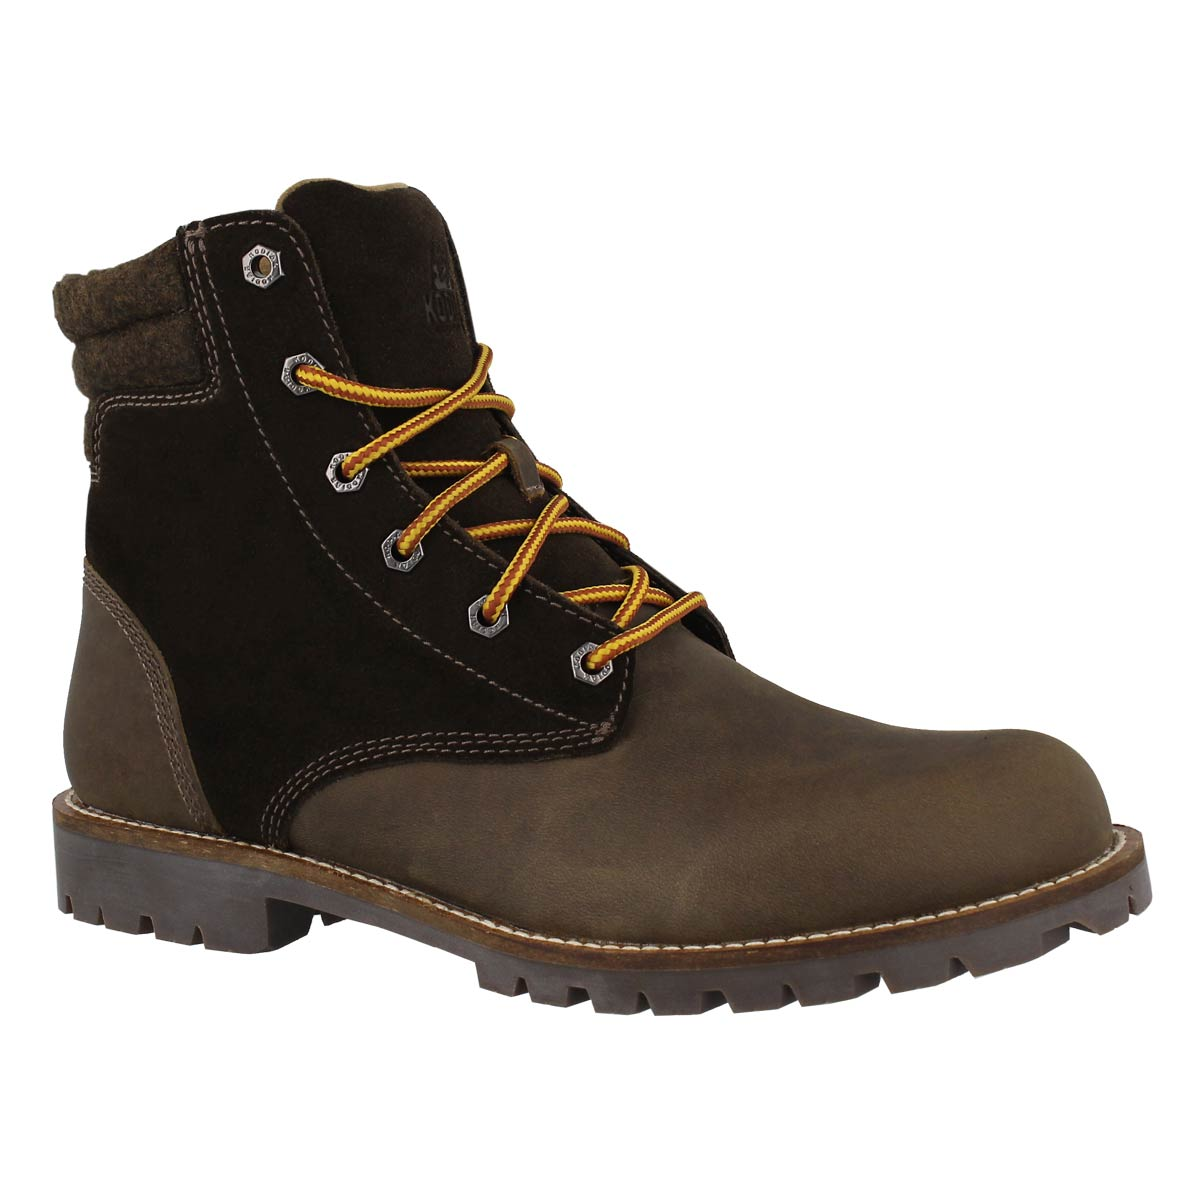 Men's BRONX olive waterproof ankle boots